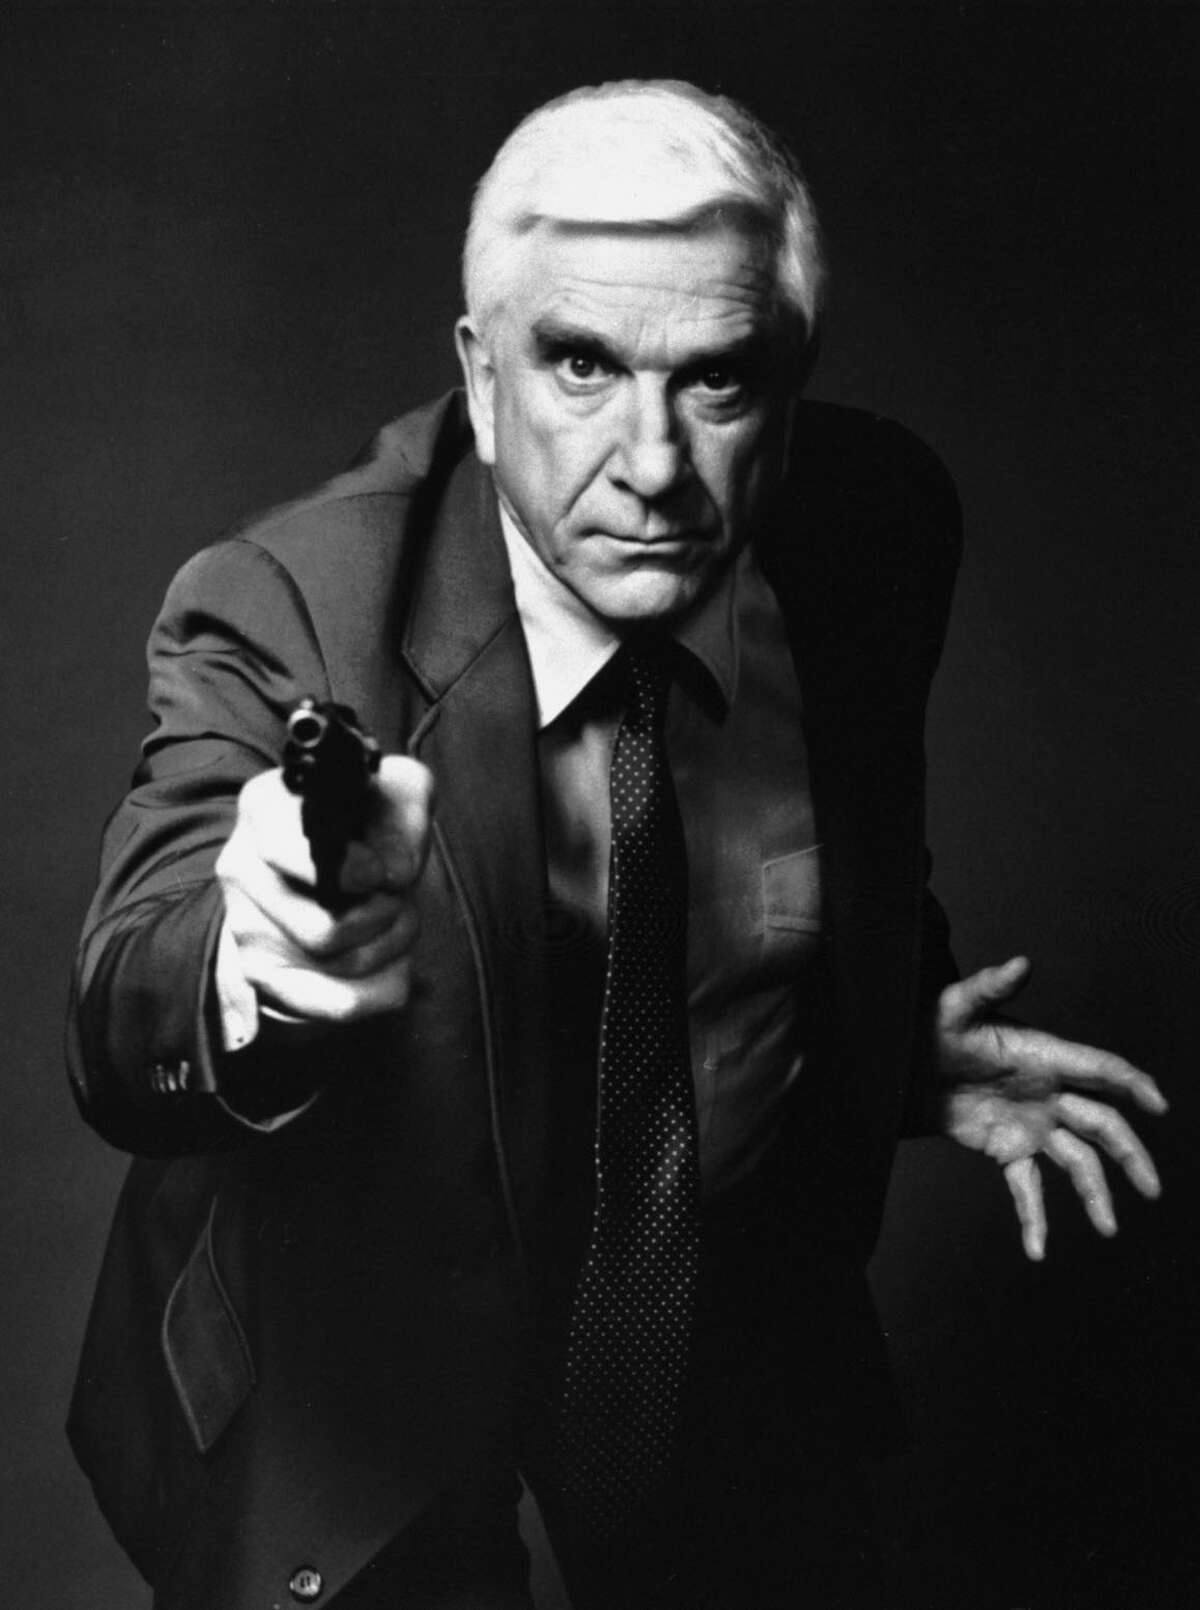 The Naked Gun: From the Files of Police Squad! (1988) Available on Netflix January 1